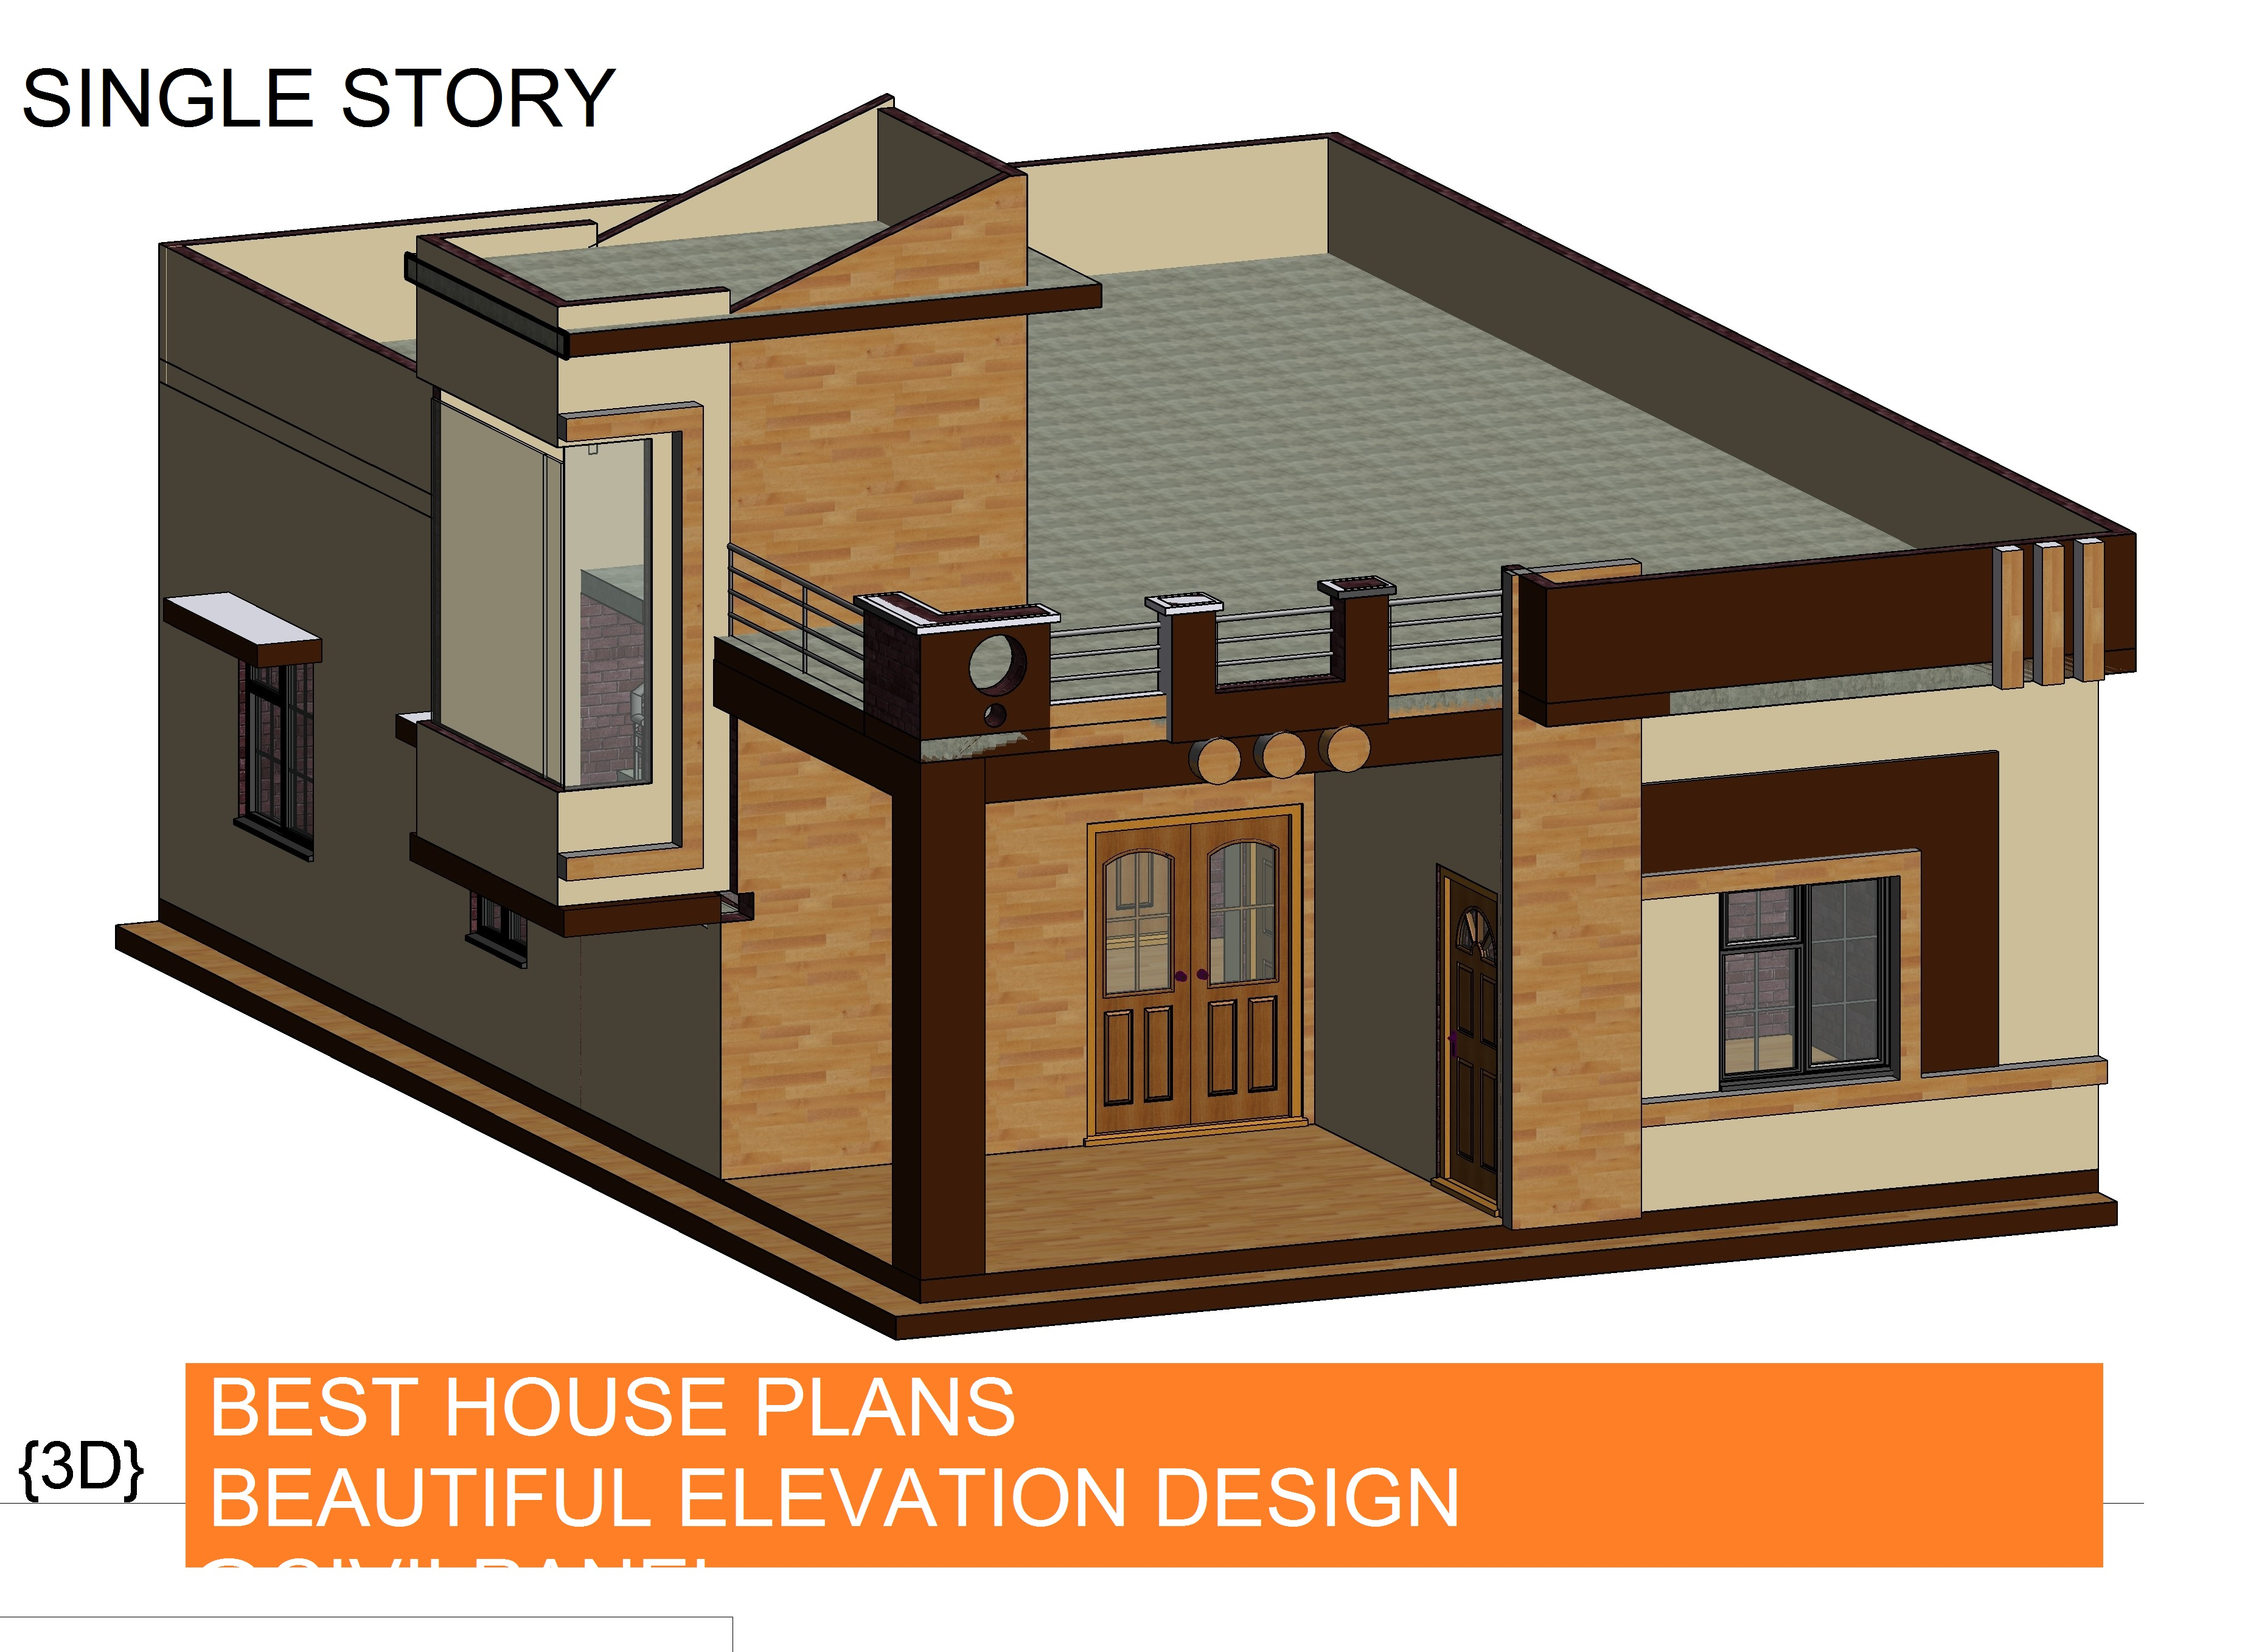 28x40 HOUSE PLANS WITH BEAUTIFUL ELEVATION DESIGN